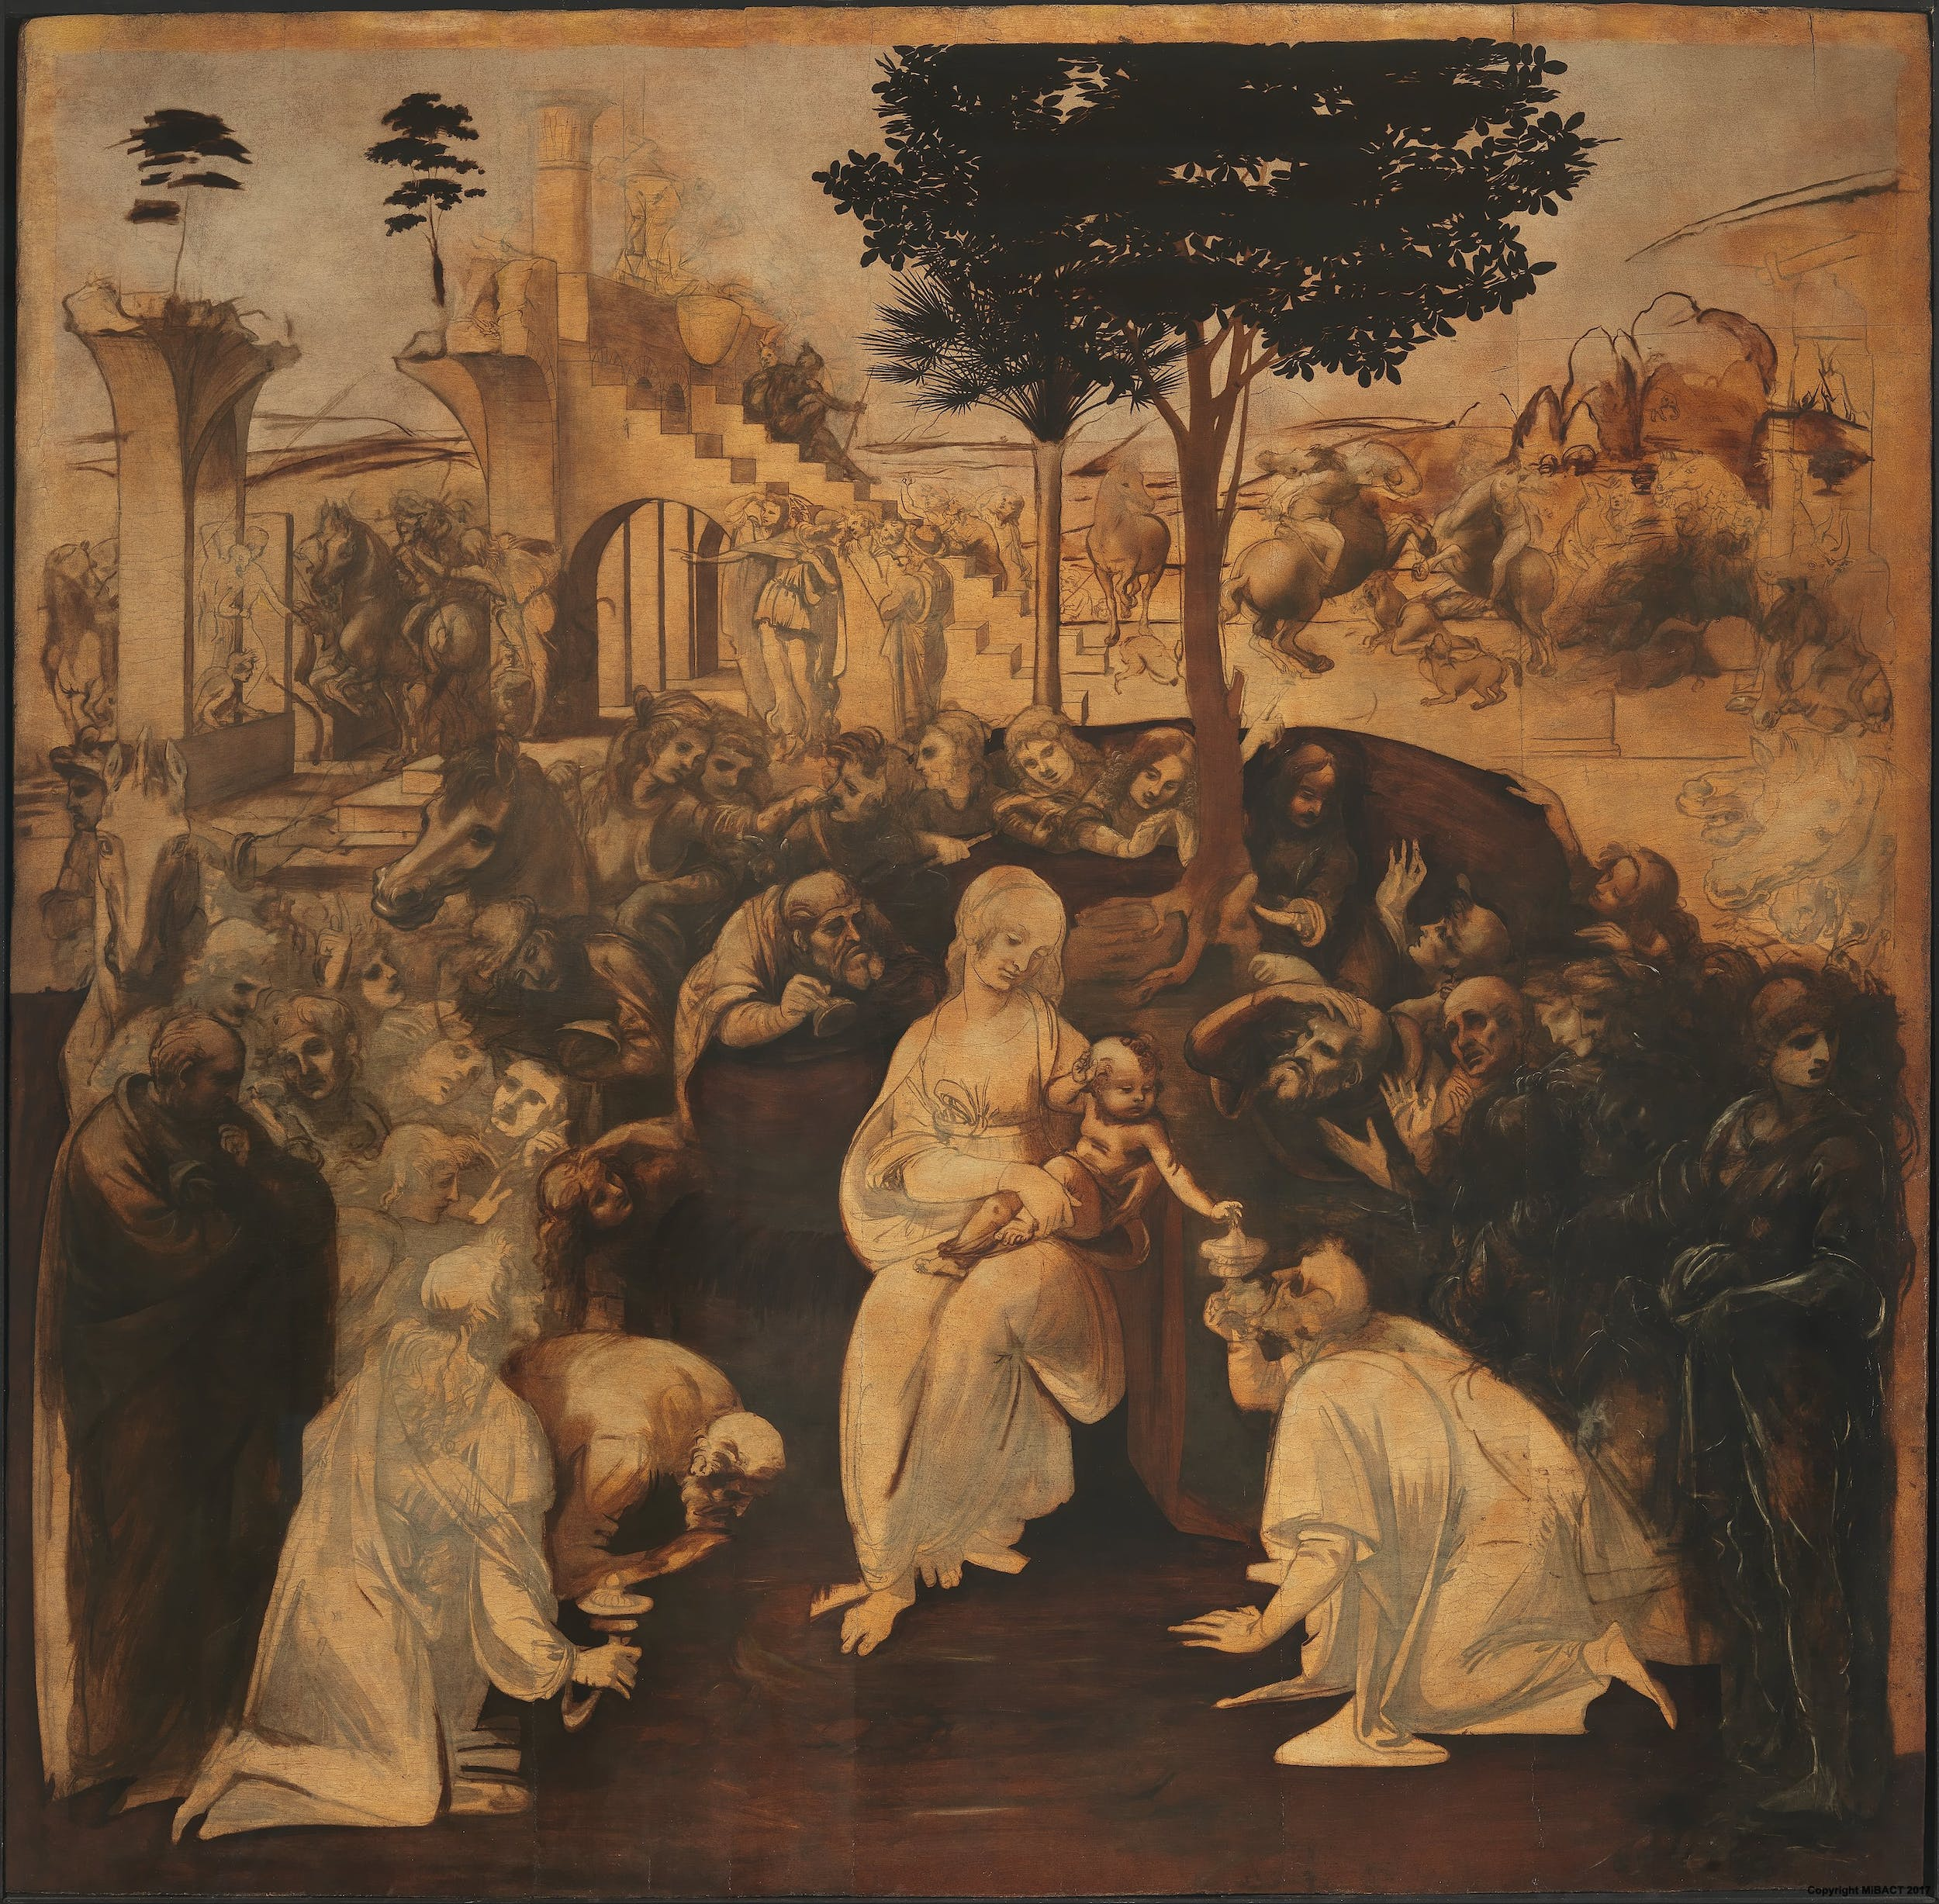 Adoration Of The Magi San Donato In Scopeto - Most recent magi map by us states